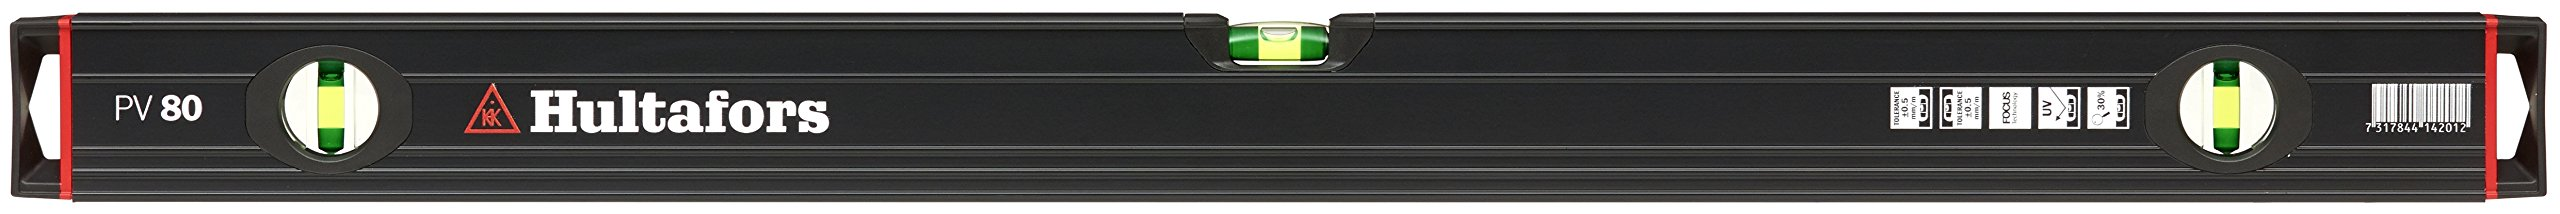 Hultafors 414201 PV 80 of aluminium Spirit Level